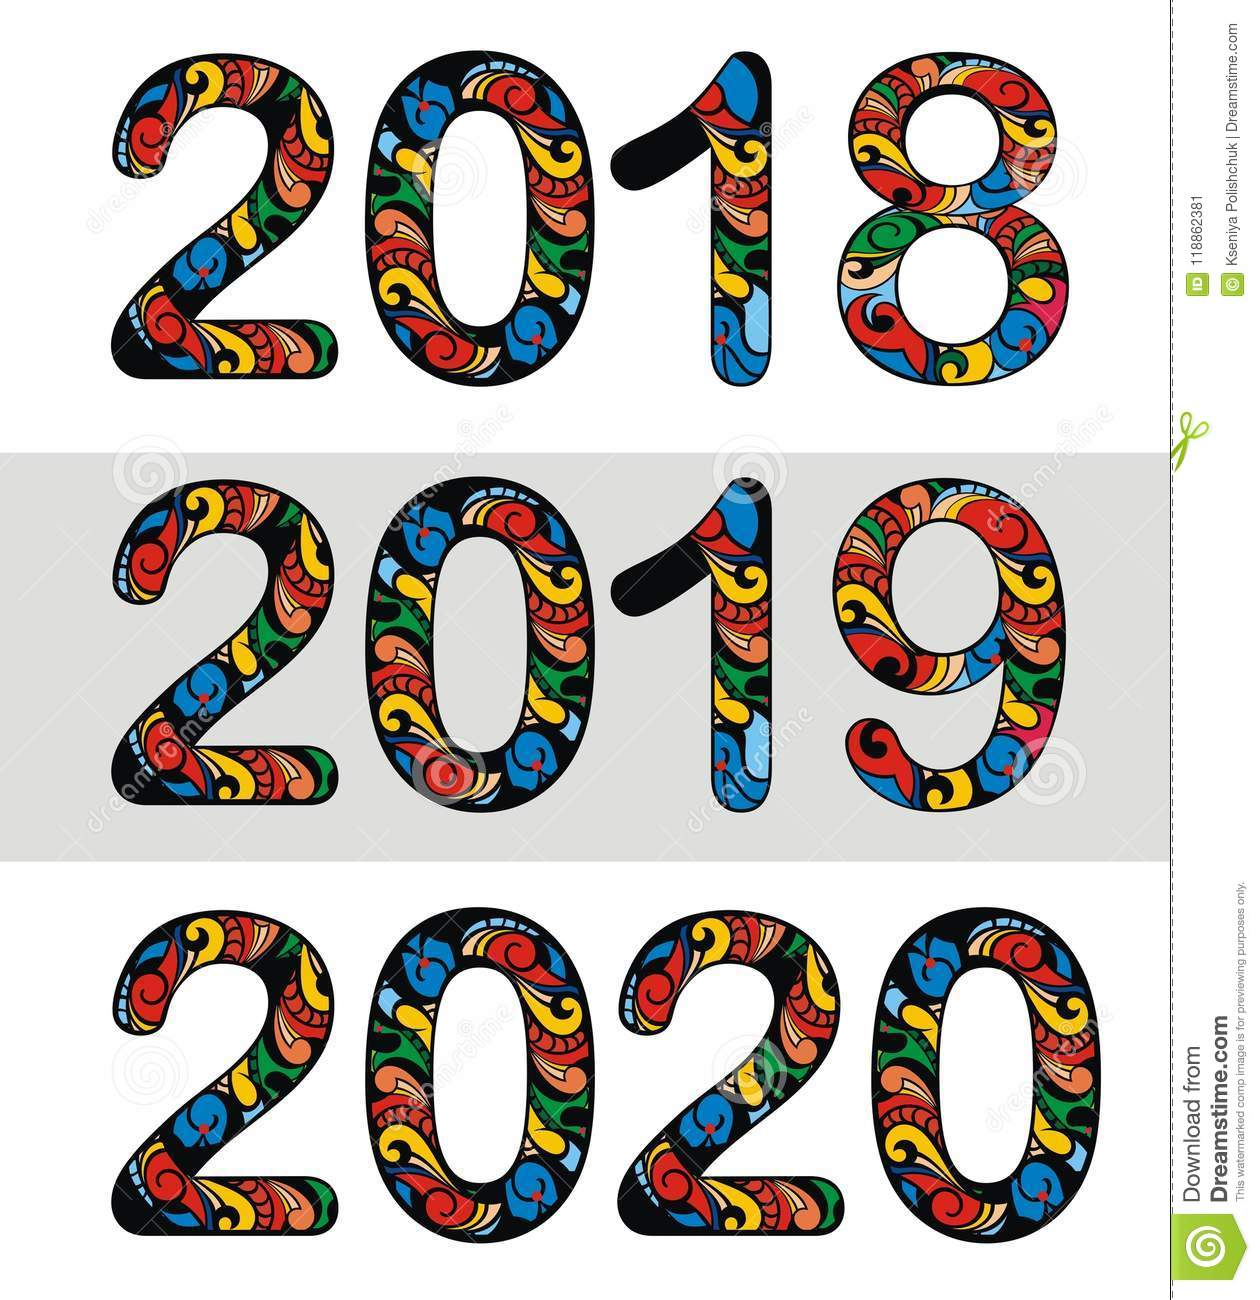 New Year 2018, 2019, 2020 Number Design Stock Vector ...